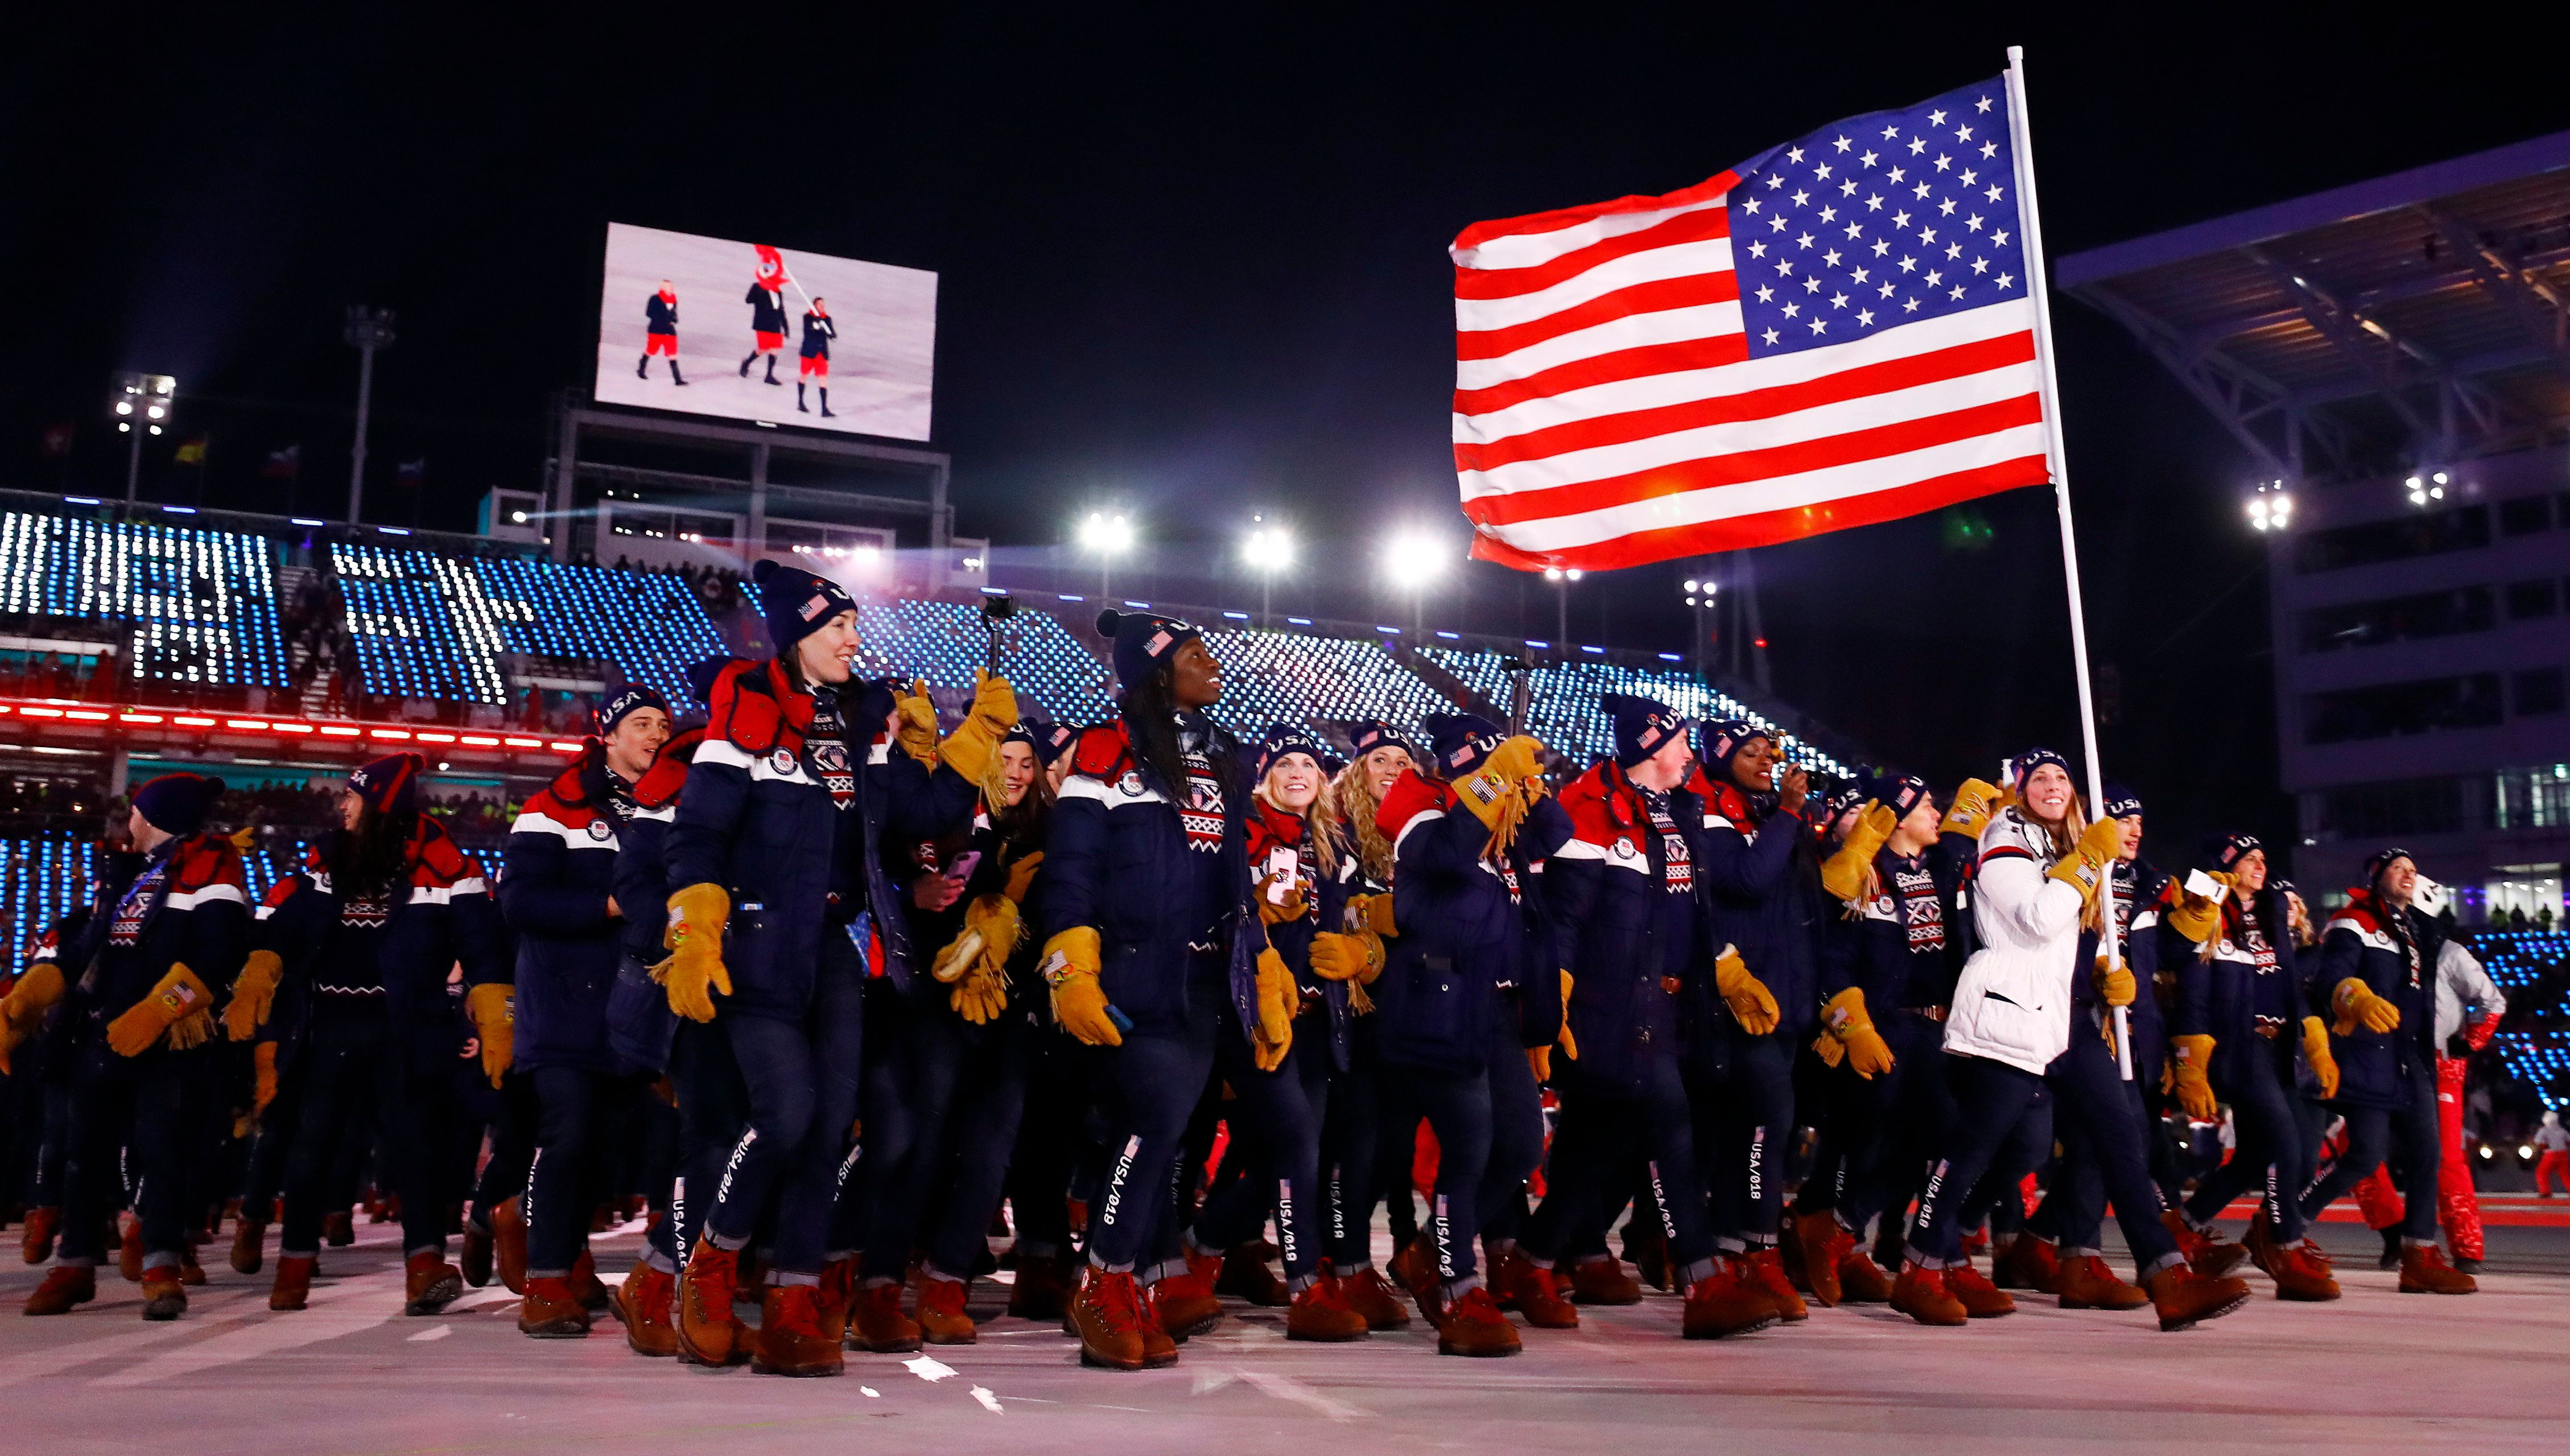 Pyeongchang 2018 Winter Olympics – Opening ceremony – Pyeongchang Olympic Stadium - Pyeongchang, South Korea – February 9, 2018 -  Erin Hamlin of the U.S. carries the national flag during the opening ceremony. REUTERS/Kai Pfaffenbach